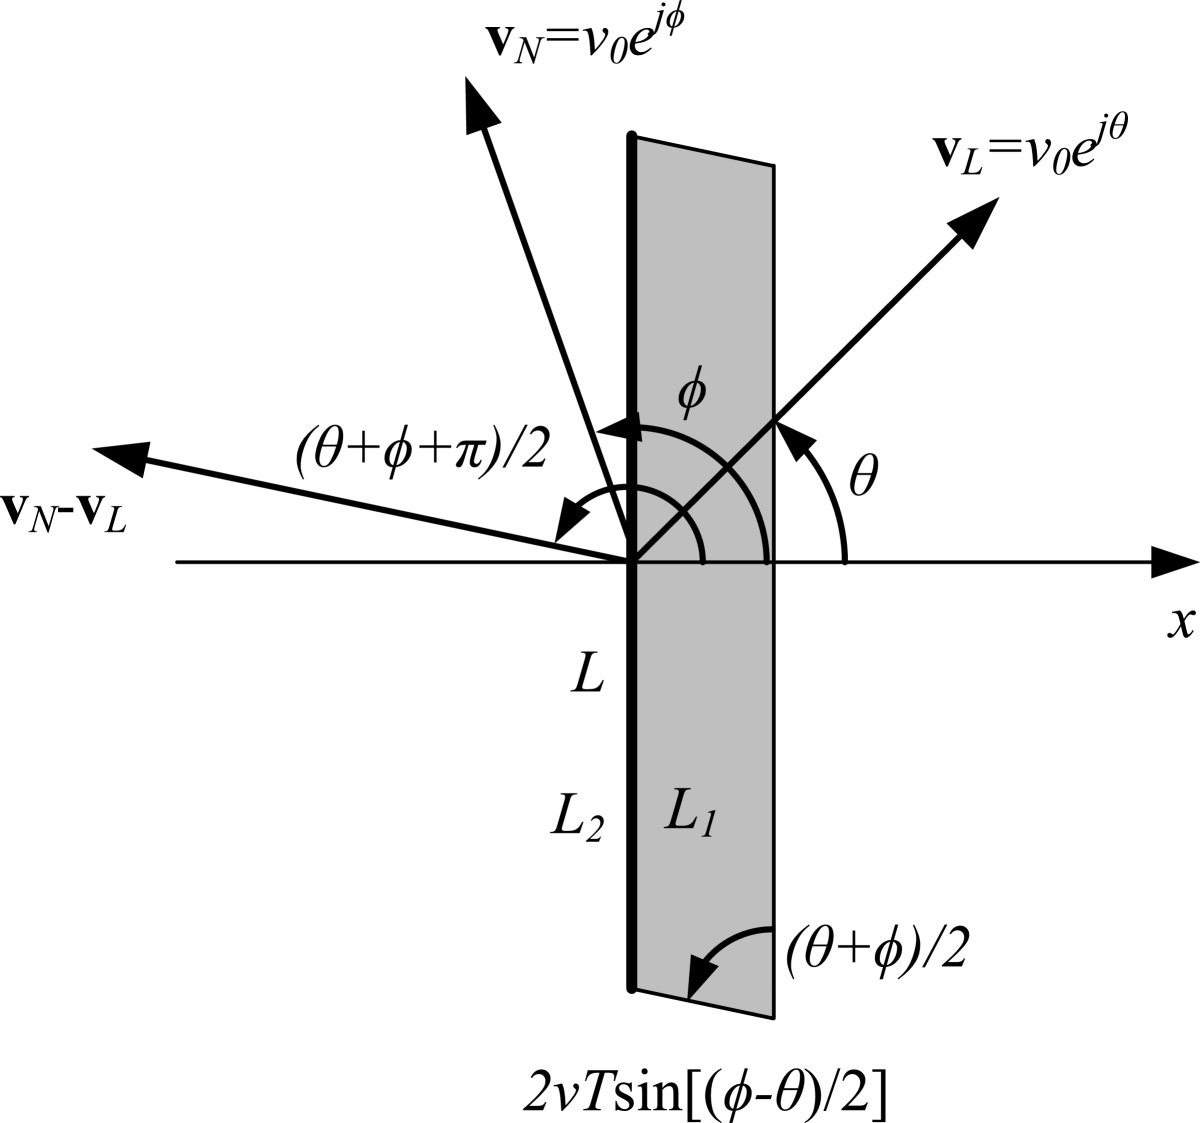 http://static-content.springer.com/image/art%3A10.1186%2F1687-1499-2013-23/MediaObjects/13638_2011_Article_606_Fig9_HTML.jpg